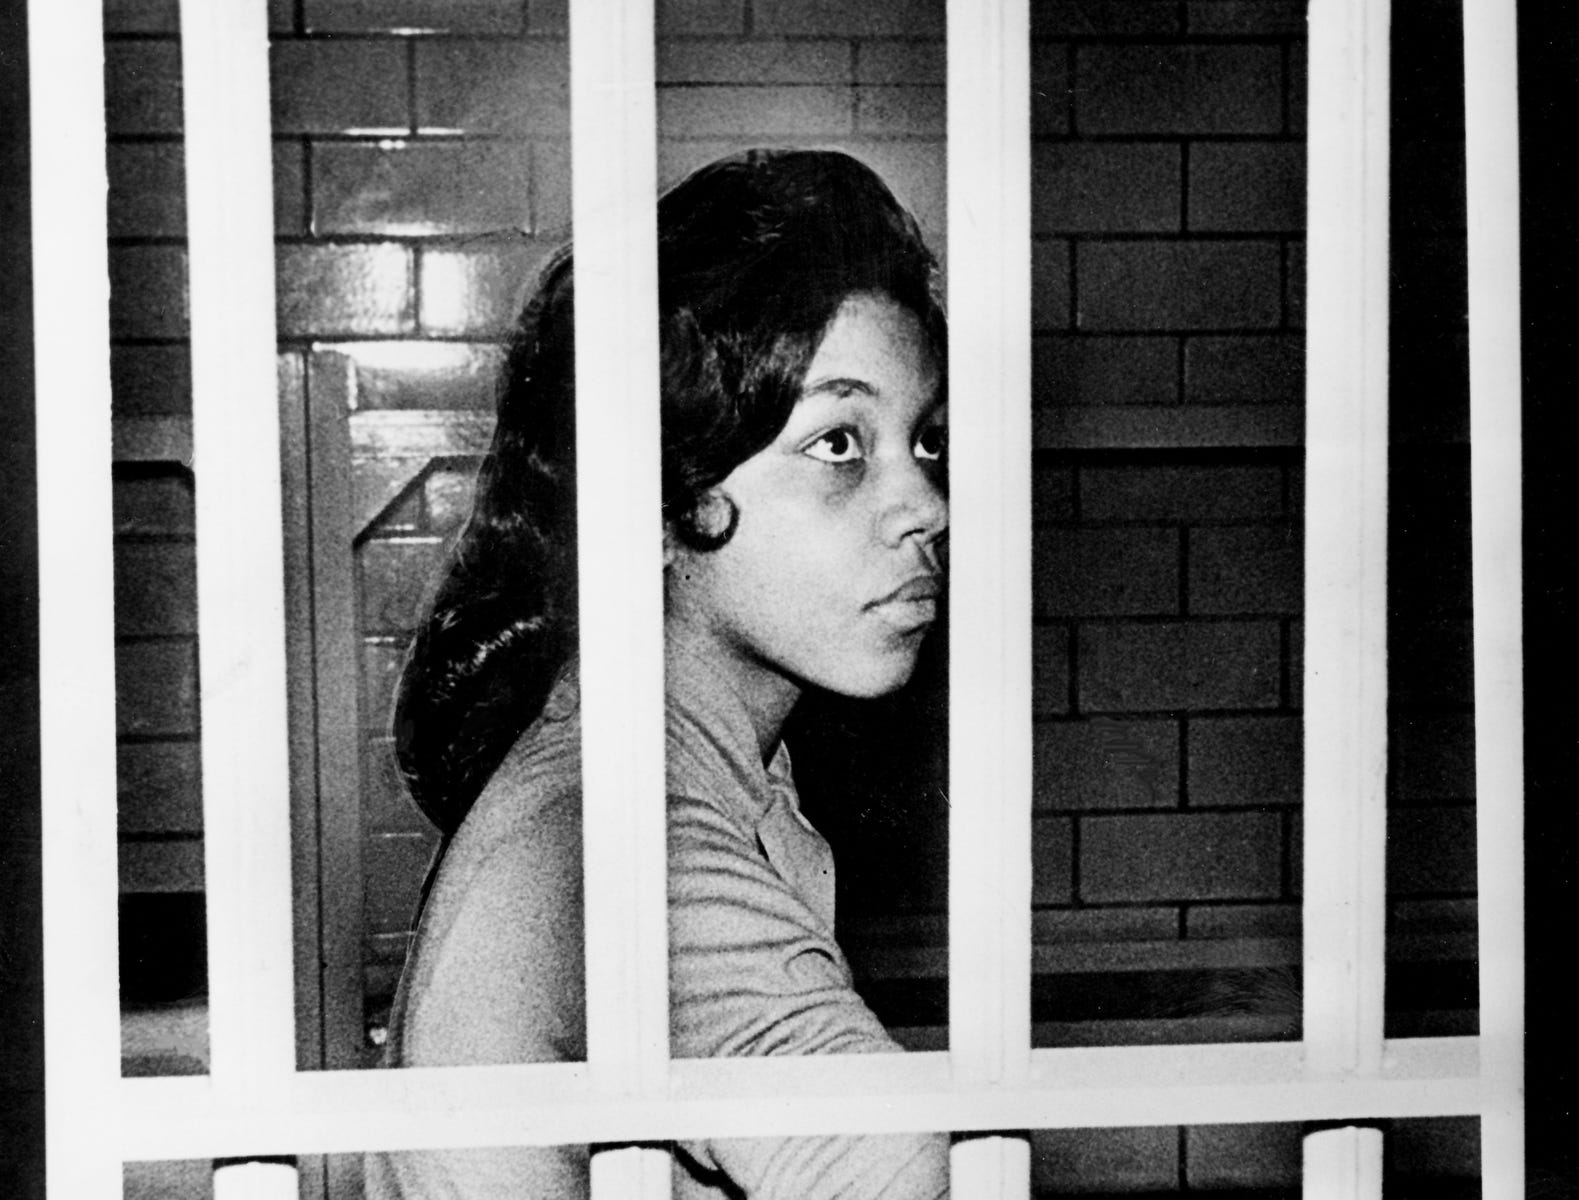 Jean Wynona Fleming, a Fisk University student, sits behind bars in Nashville city jail March 25, 1960, after her arrest at a downtown Moon-McGrath drugstore lunch counter. Black students resumed their protests against segregated eating facilities with sit-in demonstrations at nine restaurants.